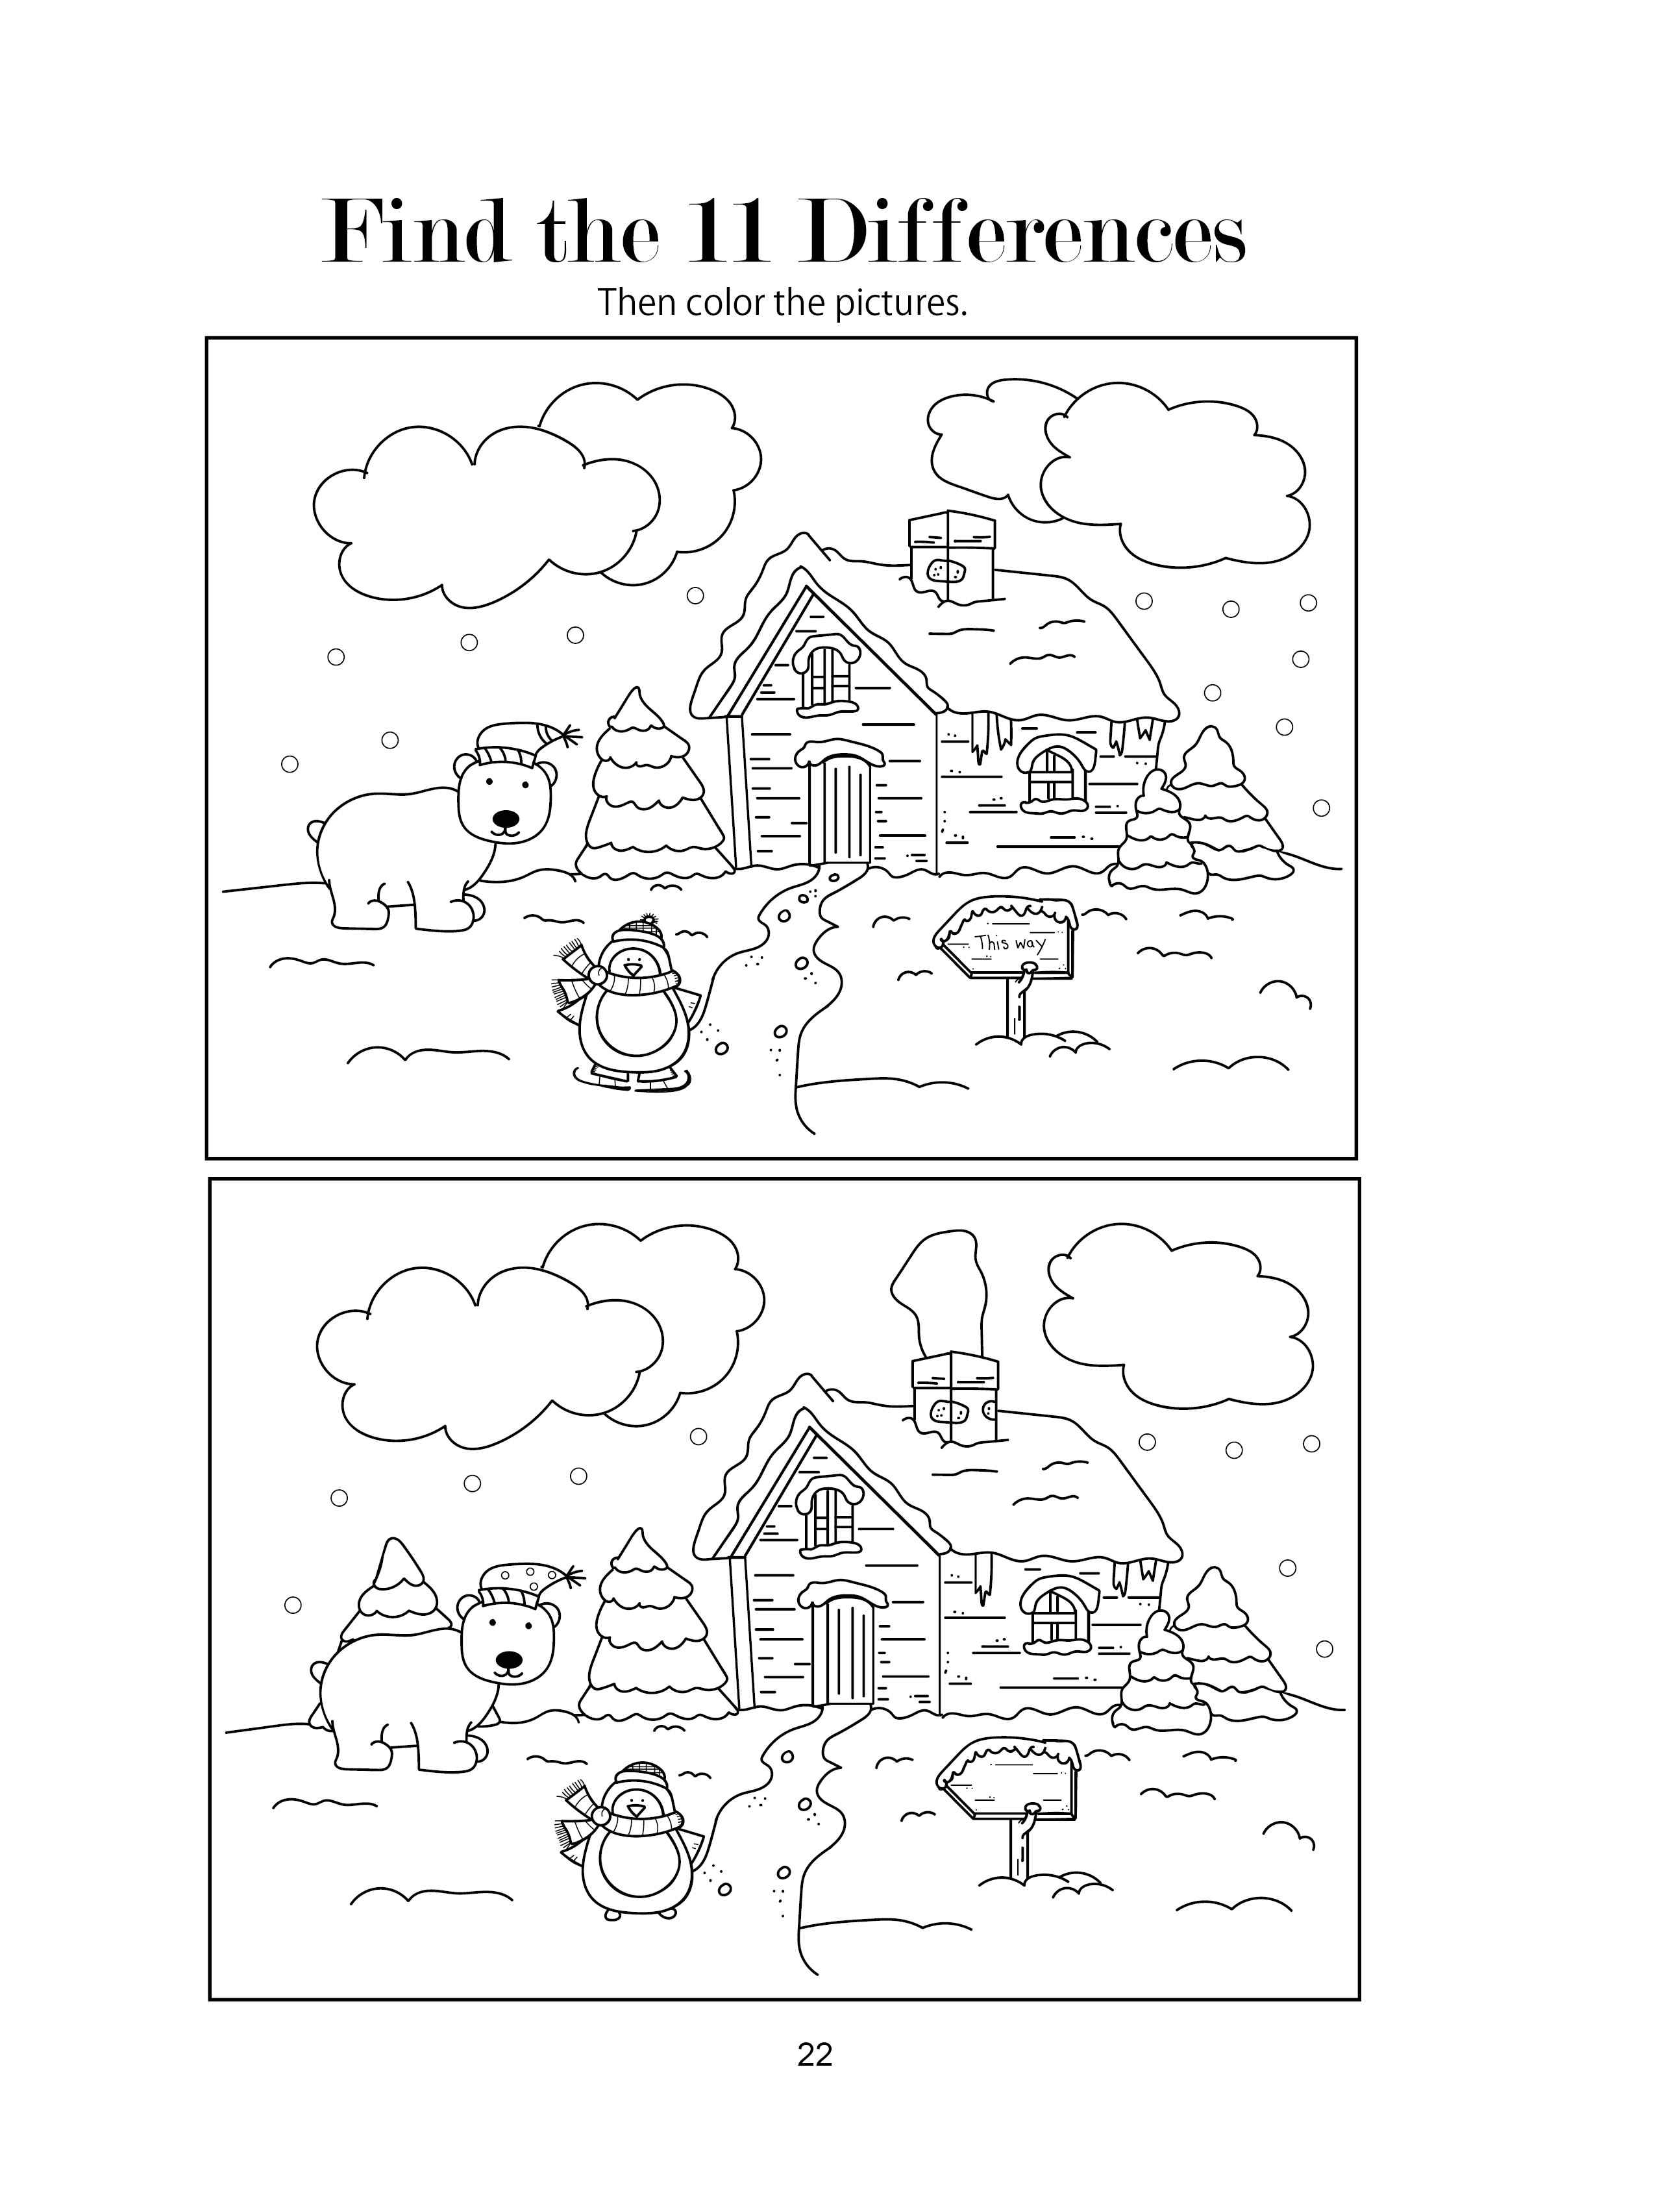 Free Christmas Find The Differences Activity Worksheet